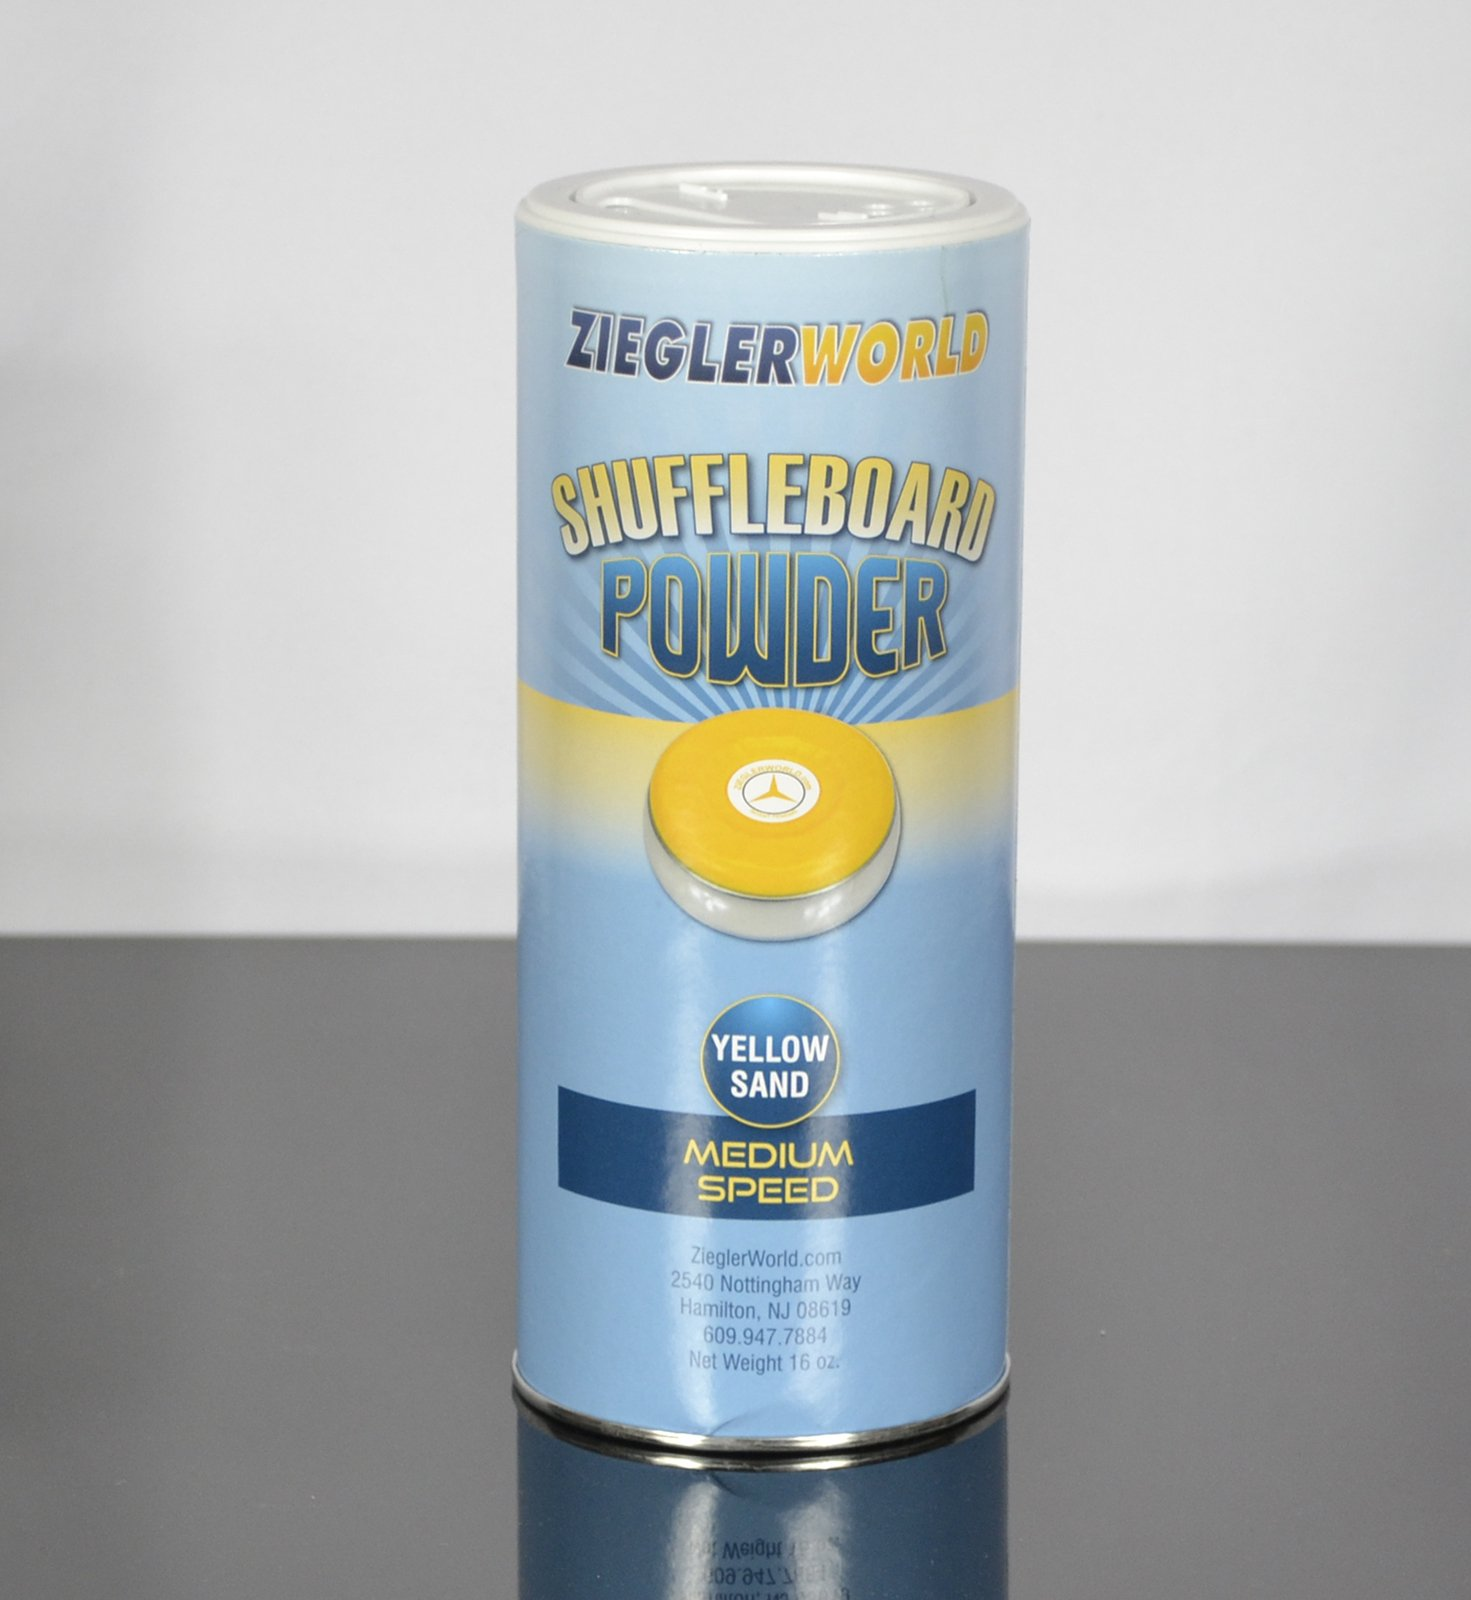 Zieglerworld 1 can Yellow Sand Table Shuffleboard Powder Wax - Medium Speed by Zieglerworld